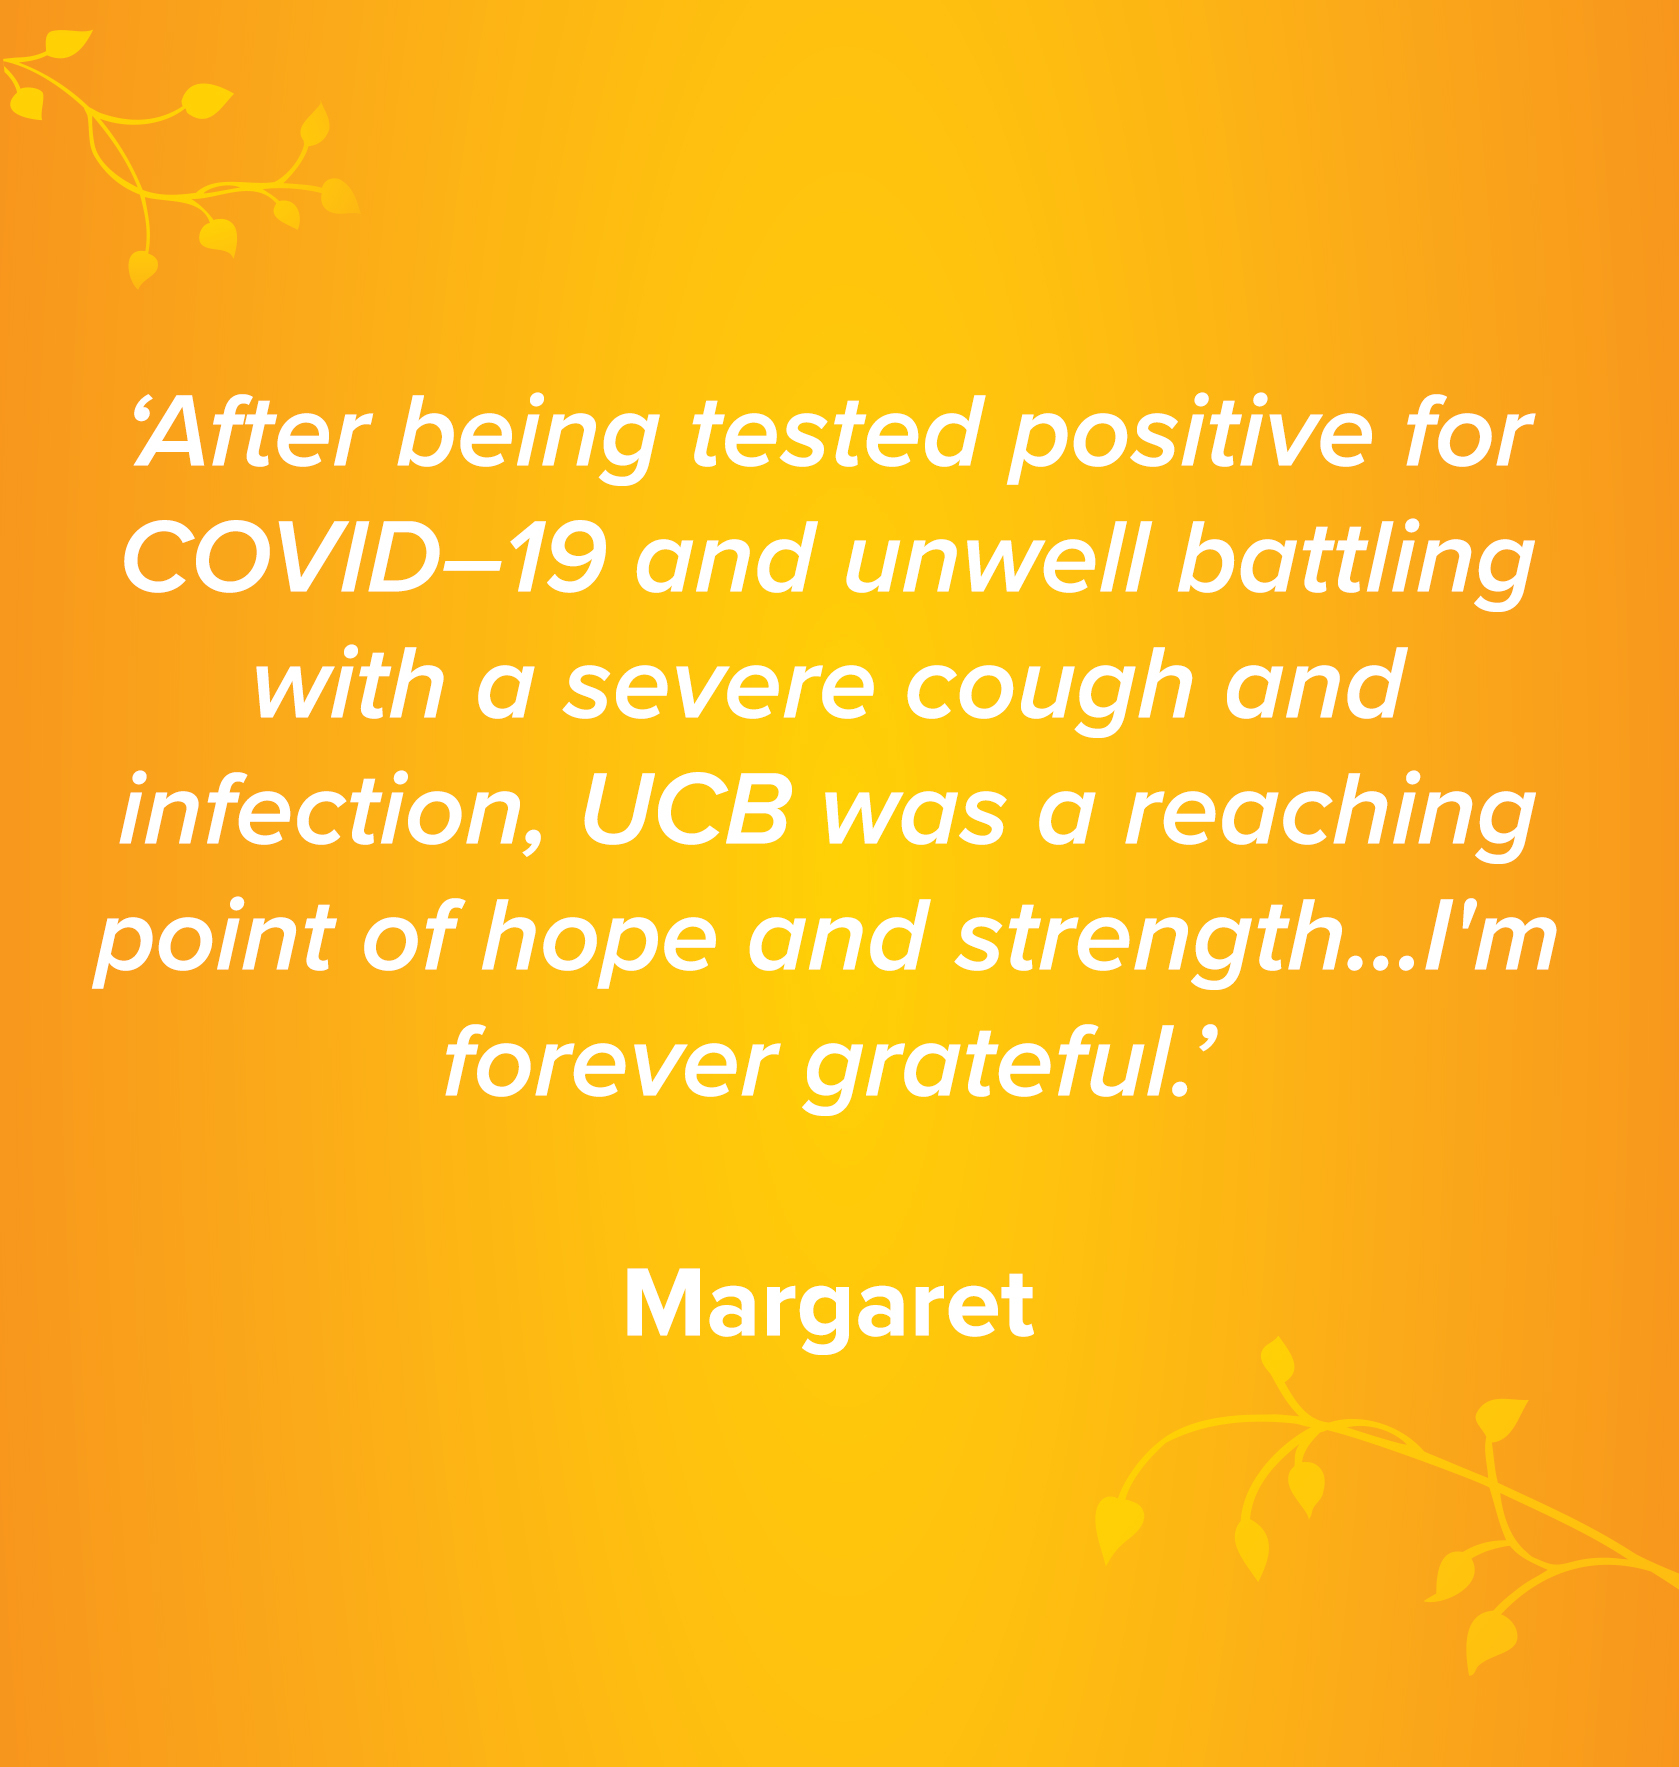 ''After being tested positive for COVID–19 and unwell battling with a severe cough and infection, UCB was a reaching point of hope and strength…I'm forever grateful.' Margaret